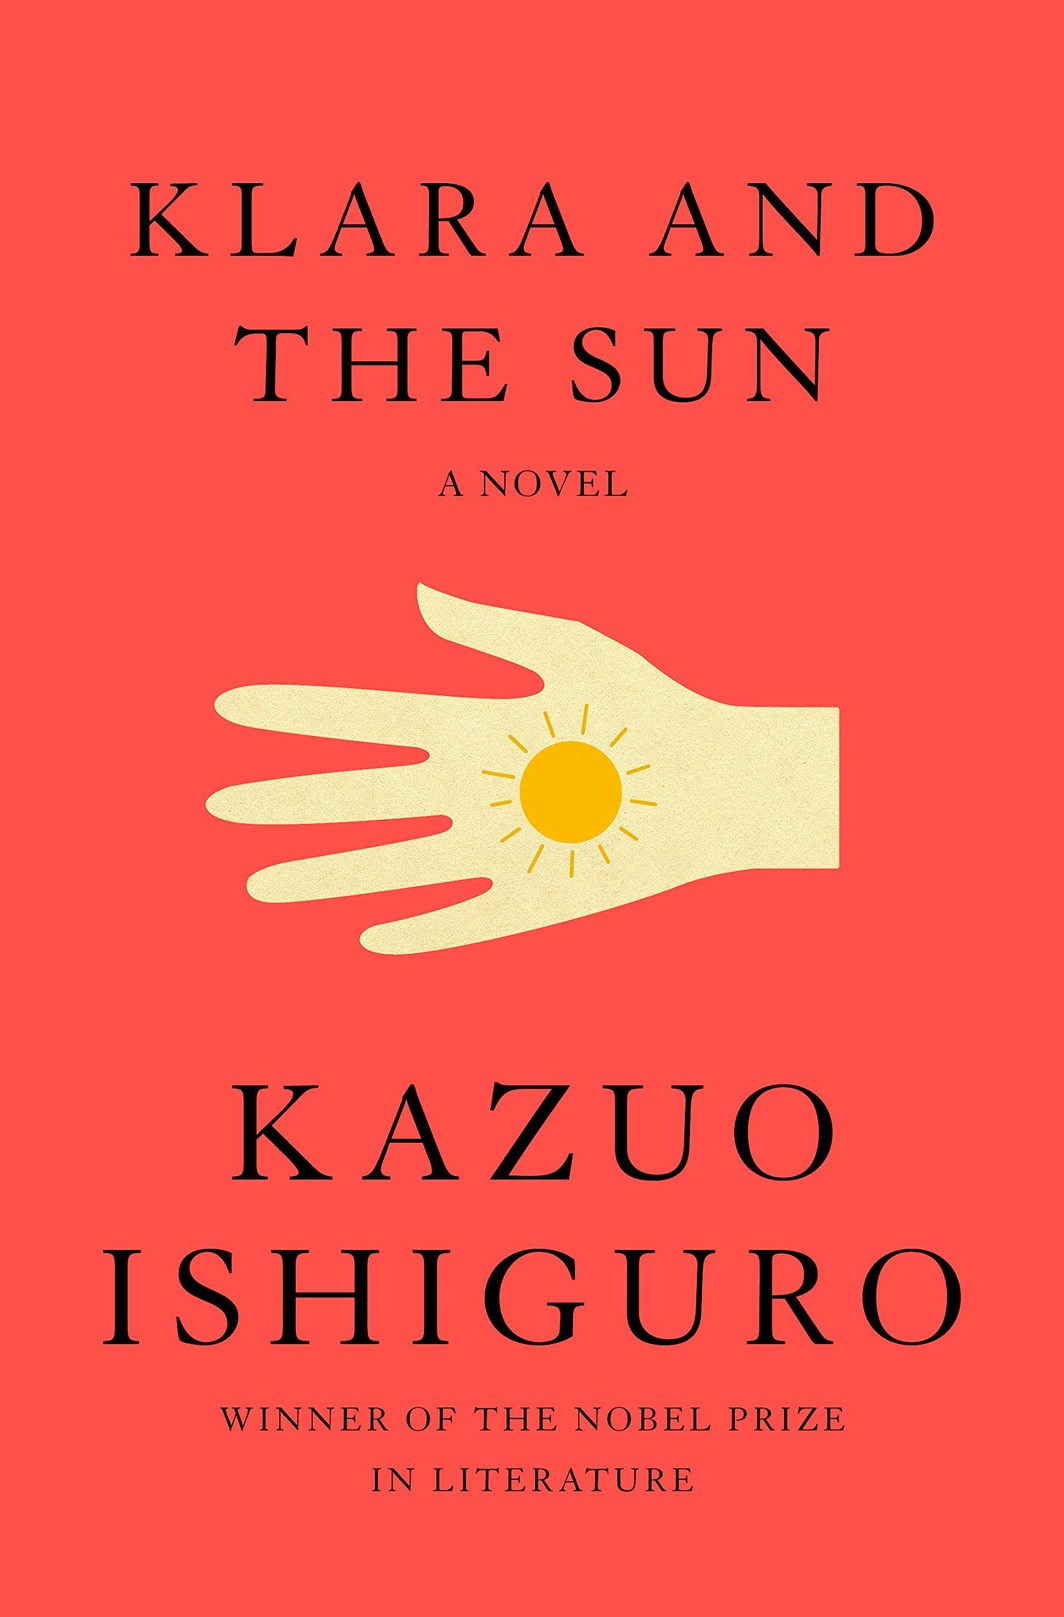 The cover of Klara and the Sun: A novel